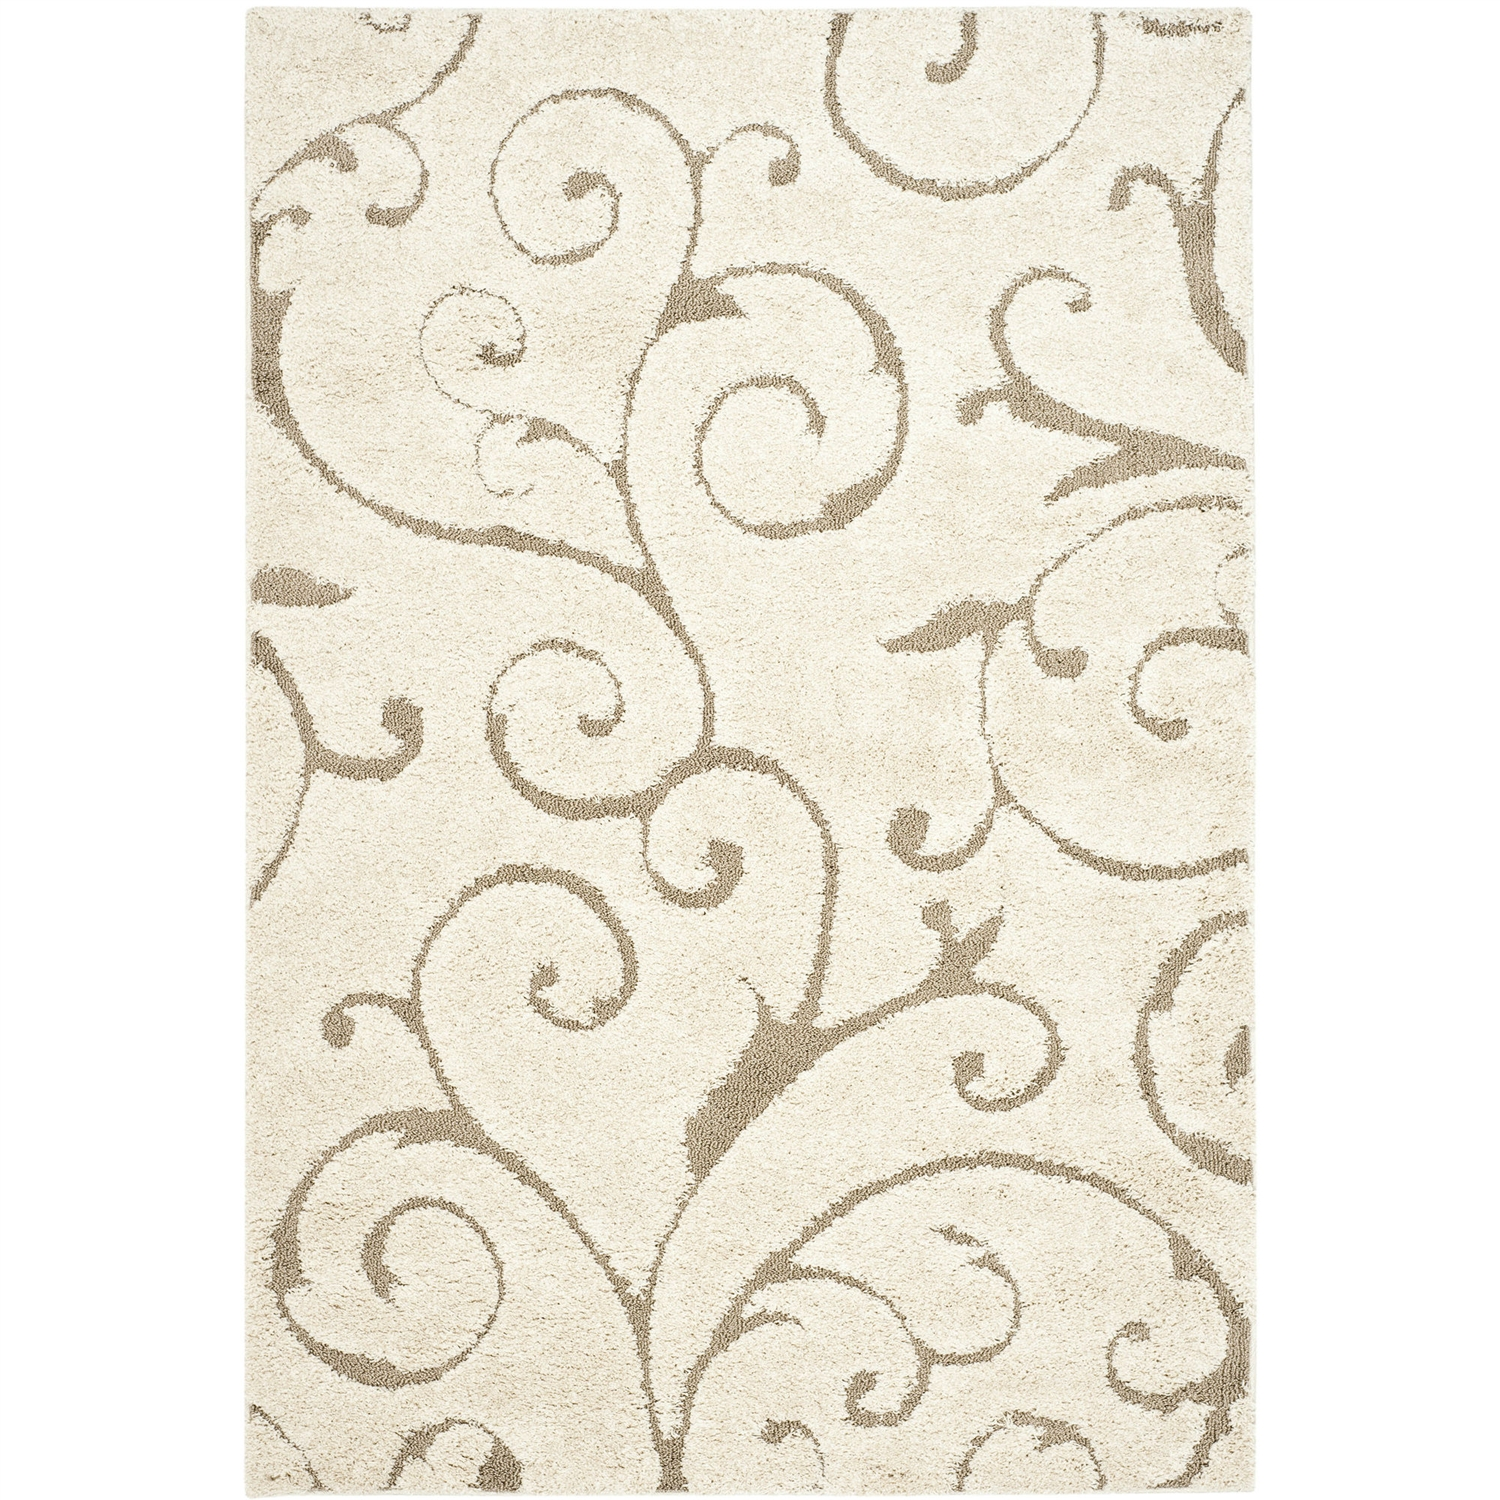 3'3 x 5'3 Shag Area Rug in Beige Off White with Scrolling Floral Pattern, SRC493152 :  This 3'3 x 5'3 Shag Area Rug in Beige Off White with Scrolling Floral Pattern features a strikingly modern floral design that can coordinate well with any upholstery in your house. A luminous cream background coupled with beige accents is sure to liven up your living room or foyer instantly. Plus, a thin, cream border surrounding the design gives your rug a neat look. Soft and comfortable to walk on, this carpet provides adequate cushioning for your feet. A 100% polypropylene construction further adds to the durability of this beautiful rug. As it is made in a power loom, the floral design throughout this rug is consistent. Simple, classic, and elegant, the rug can also be used in your bedroom or as a runner in the hallway between the bedroom and bathroom. This power-loomed rug has an extremely warm and inviting plush texture. Its intricate lines and curves are sure to win you many compliments. This versatile rug is available in different sizes and shapes to suit your various designing requirements. With professional cleaning, this shag rug offers warmth to your room for years. Don't forget to couple it with a rug pad for extra grip and to keep the rug in place.